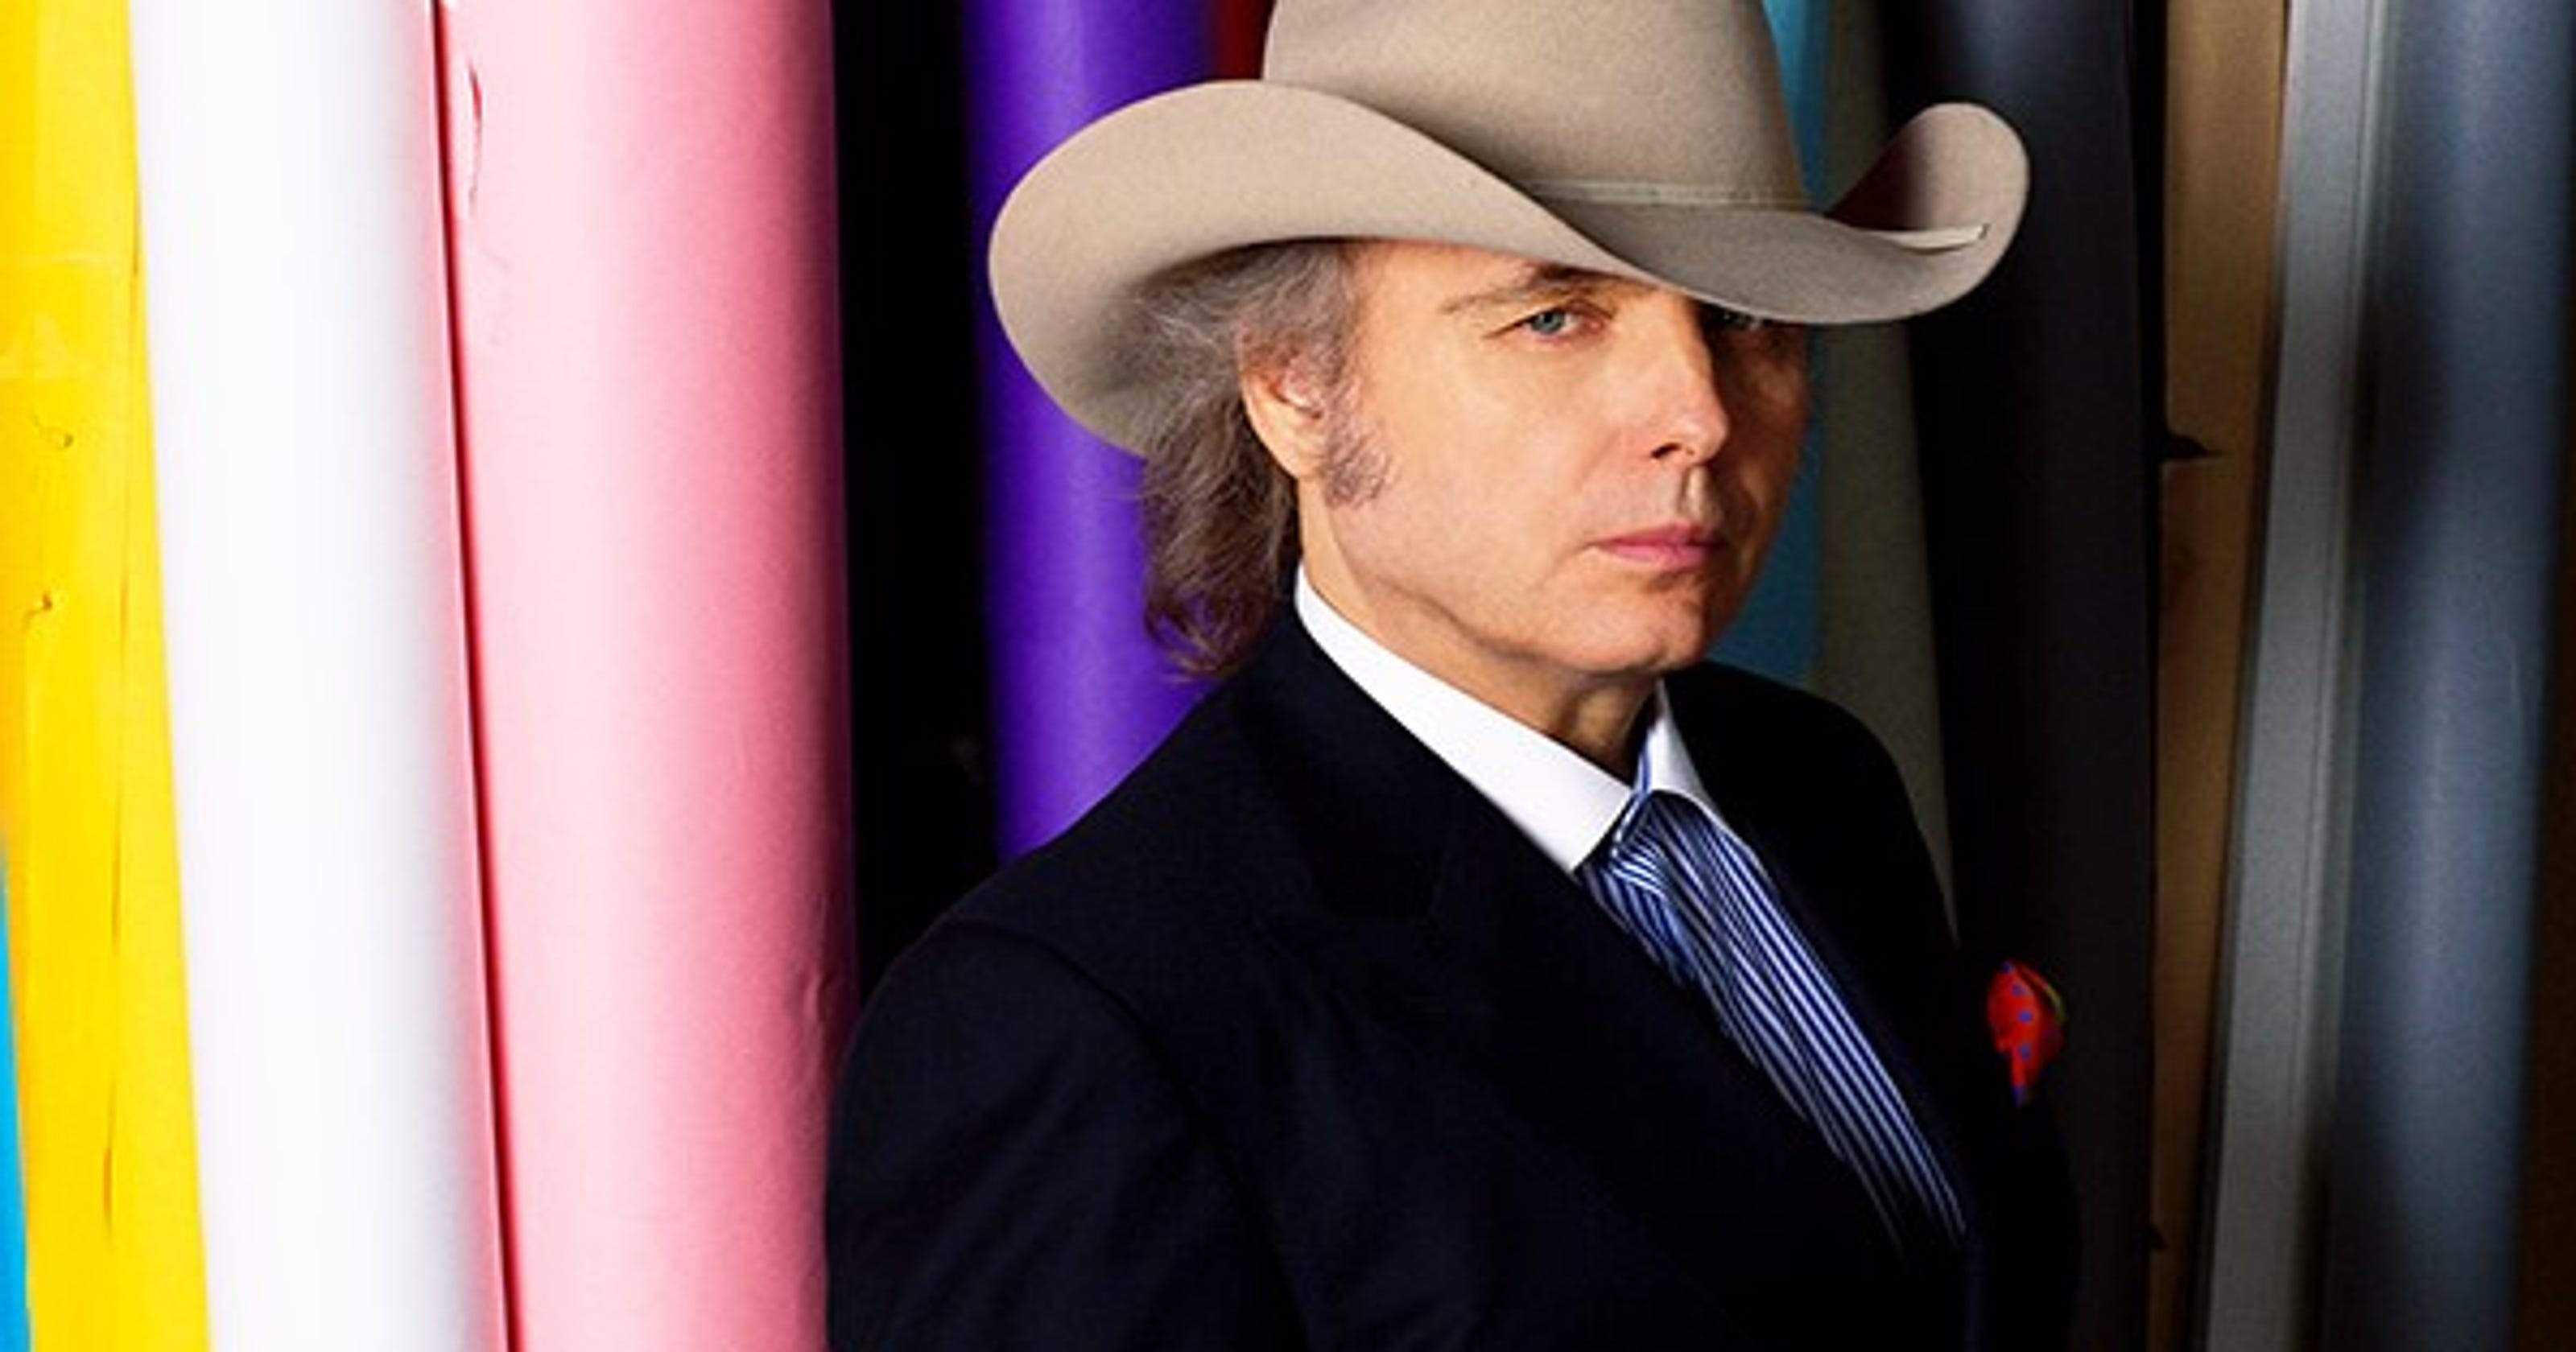 Coming up: Dwight Yoakam, Paul Rodriguez and more